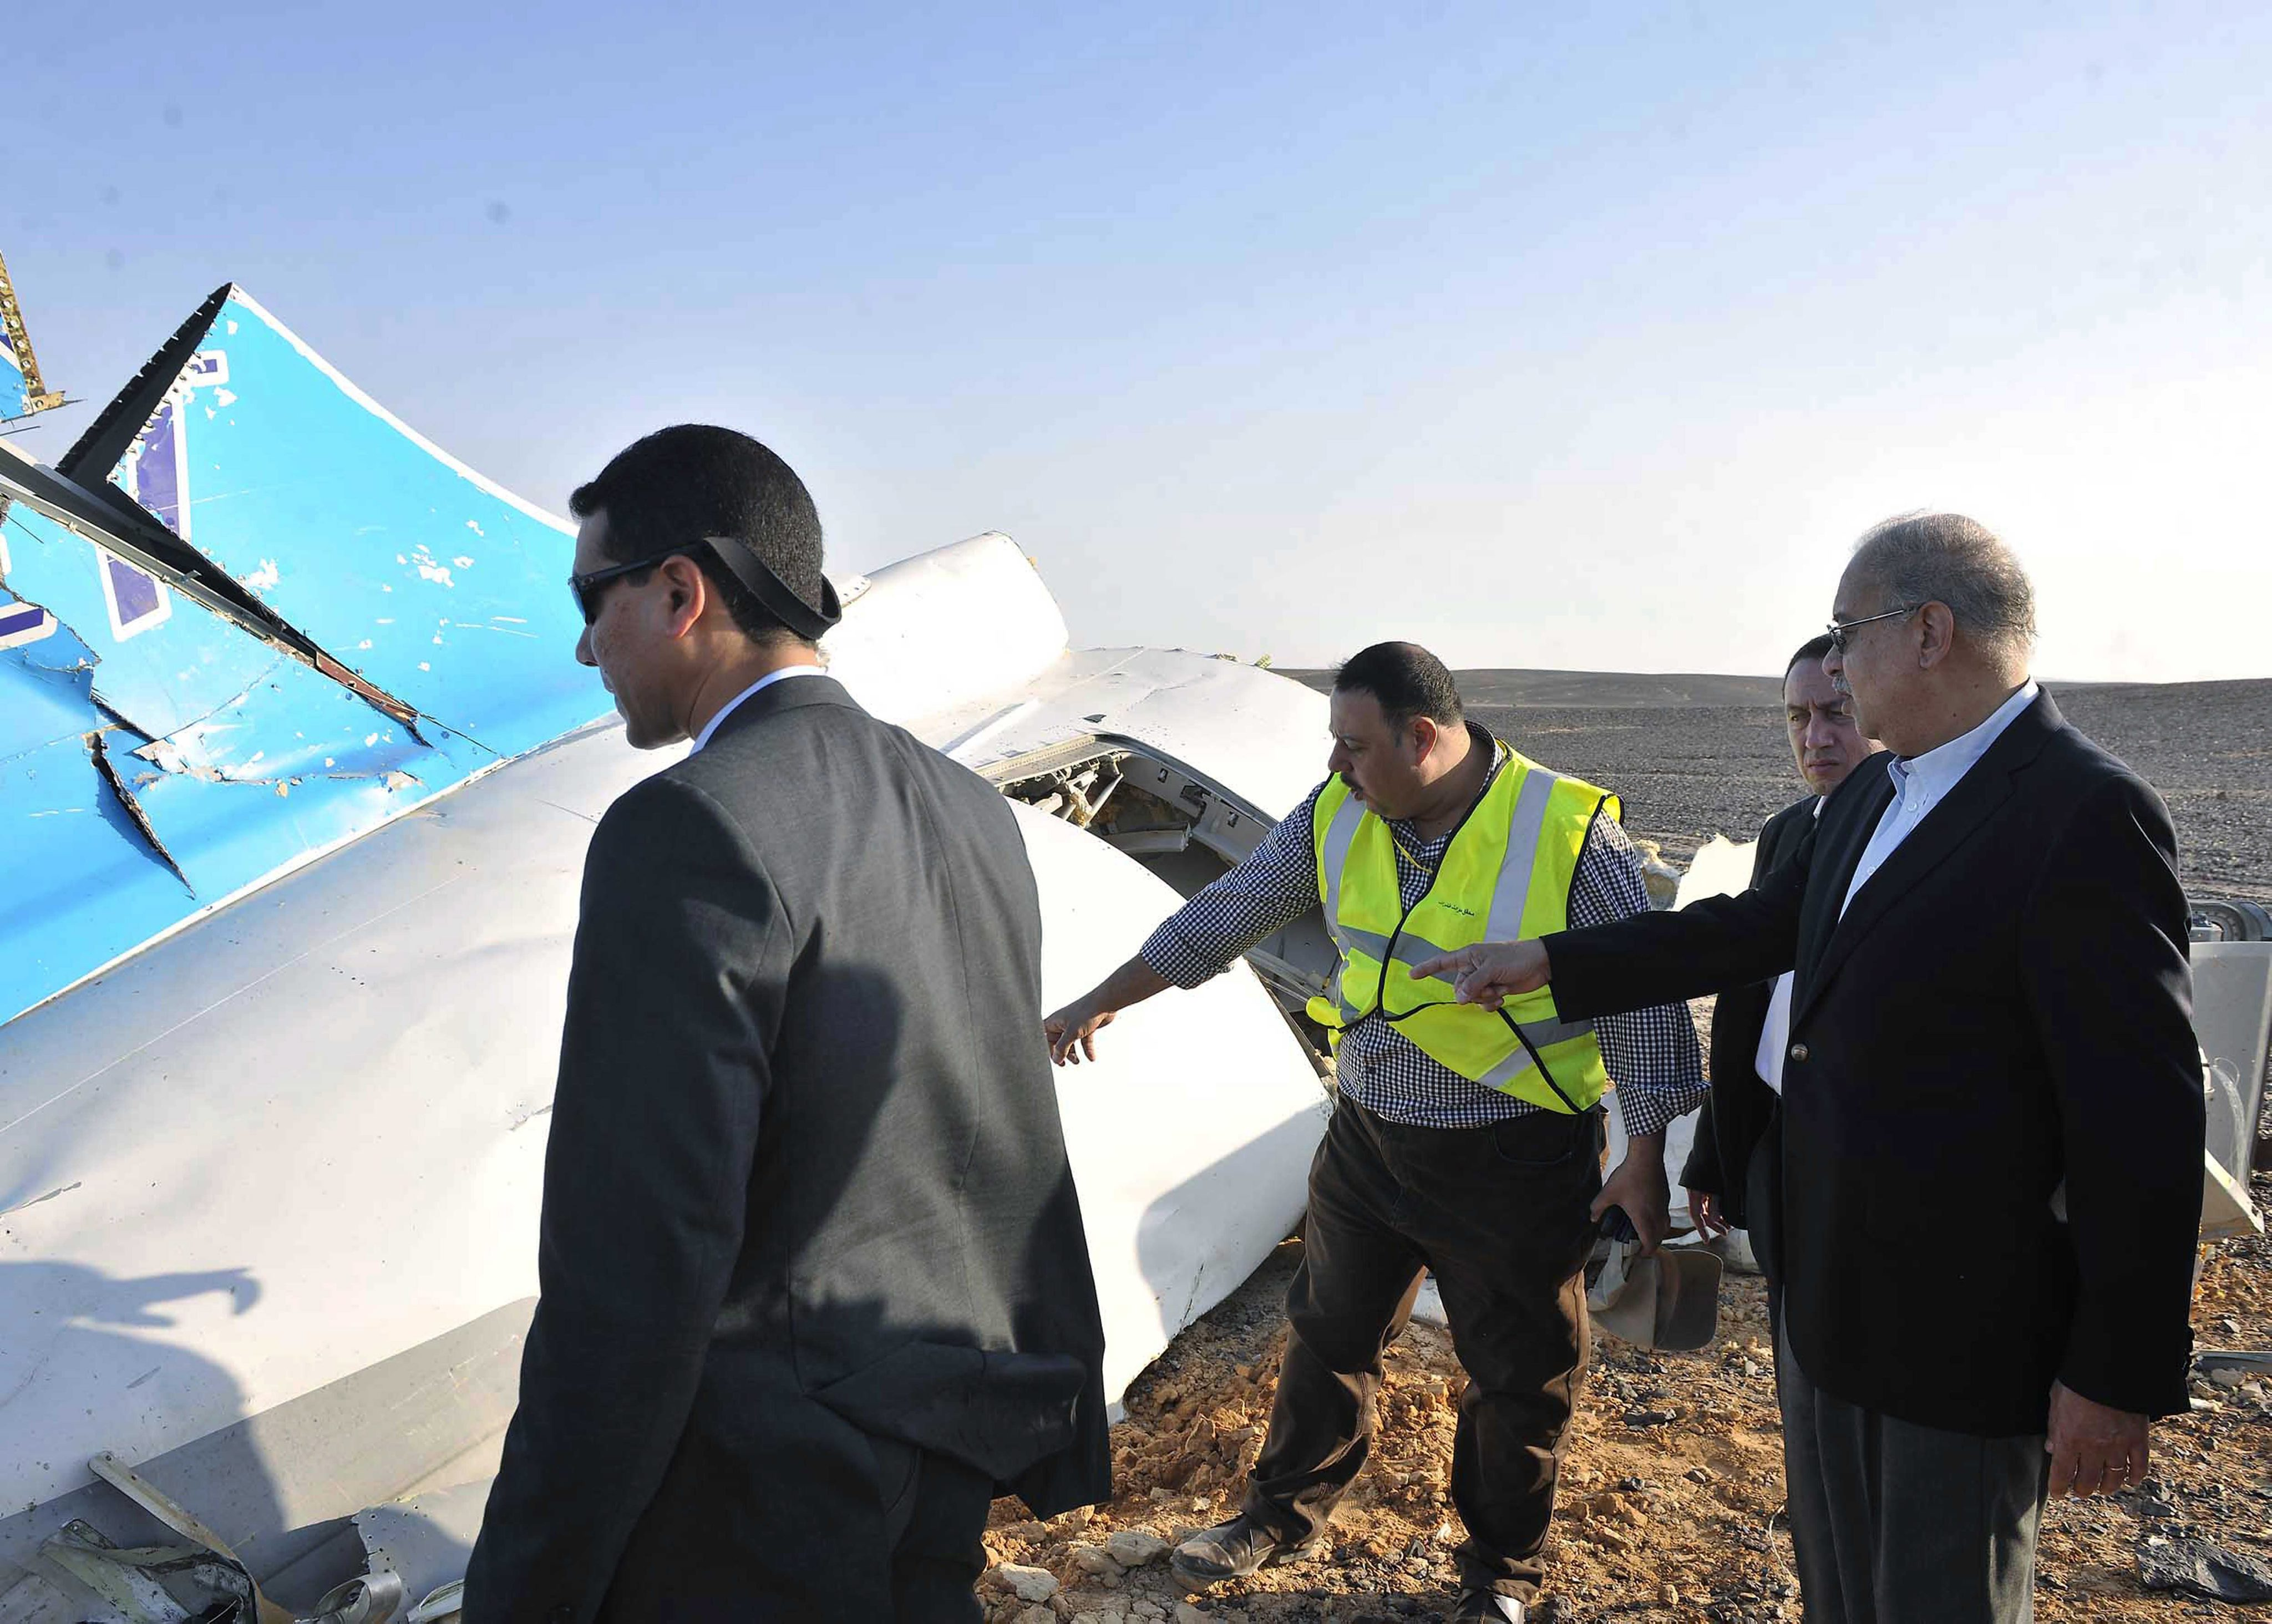 SIN10. Sinai (Egypt), .- The Egyptian Prime Minister, Sherif Ismail (R), examines the wreckage at the site of the Russian plane crash, Sinai, Egypt, 31 October 2015. According to reports the Egyptian Government has dispatched more than 45 ambulances to the crash site of the Kogalymavia Metrojet Russian passenger jet, which disappeared from raider after requesting an emergency landing early 31 October, crashing in the mountainous al-Hasanah area of central Sinai. The black box has been recovered at the site. (Egipto) EFE/EPA/STR EGYPT OUT Authorities fear all on board crashed Russian jet dead